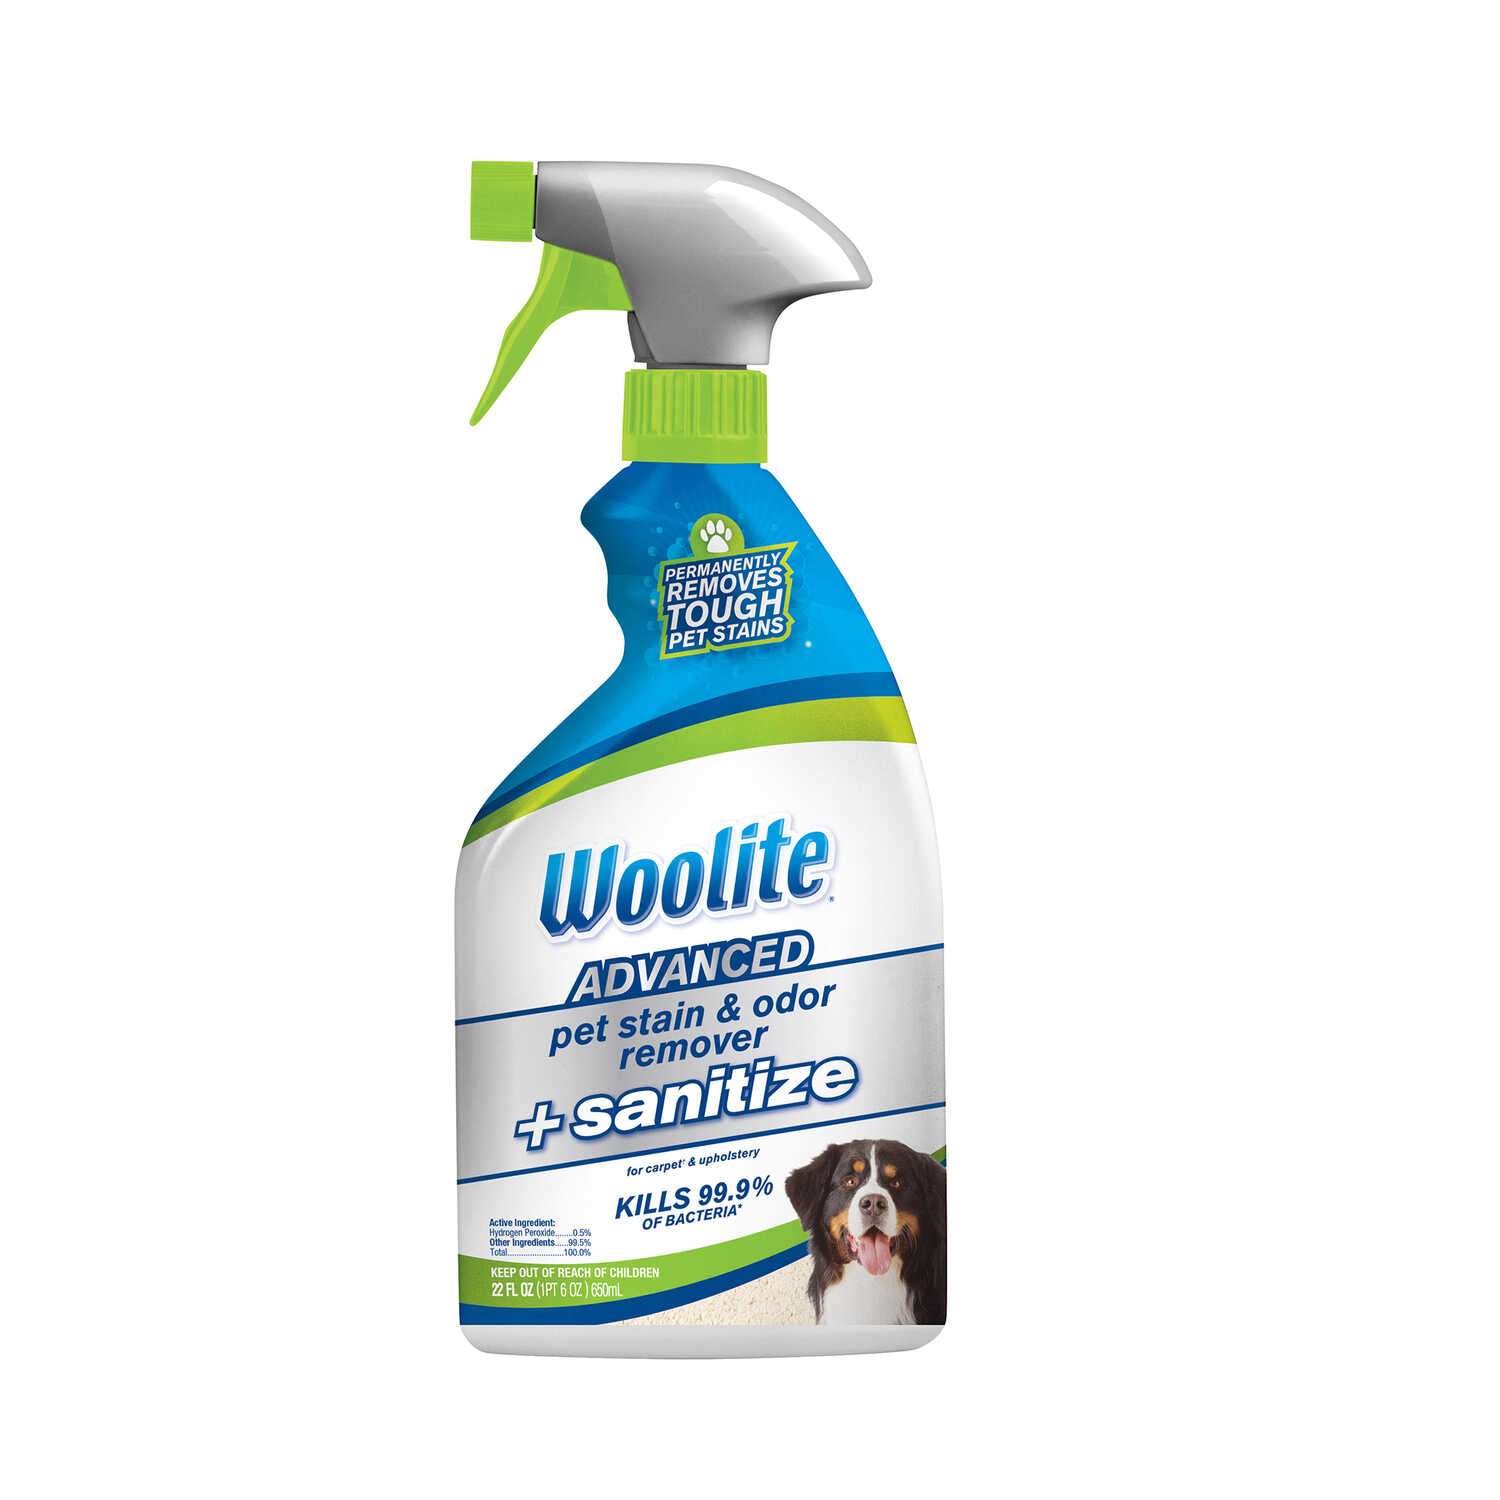 Woolite  Advanced  Pet Stain Carpet Cleaner  22 oz. Liquid